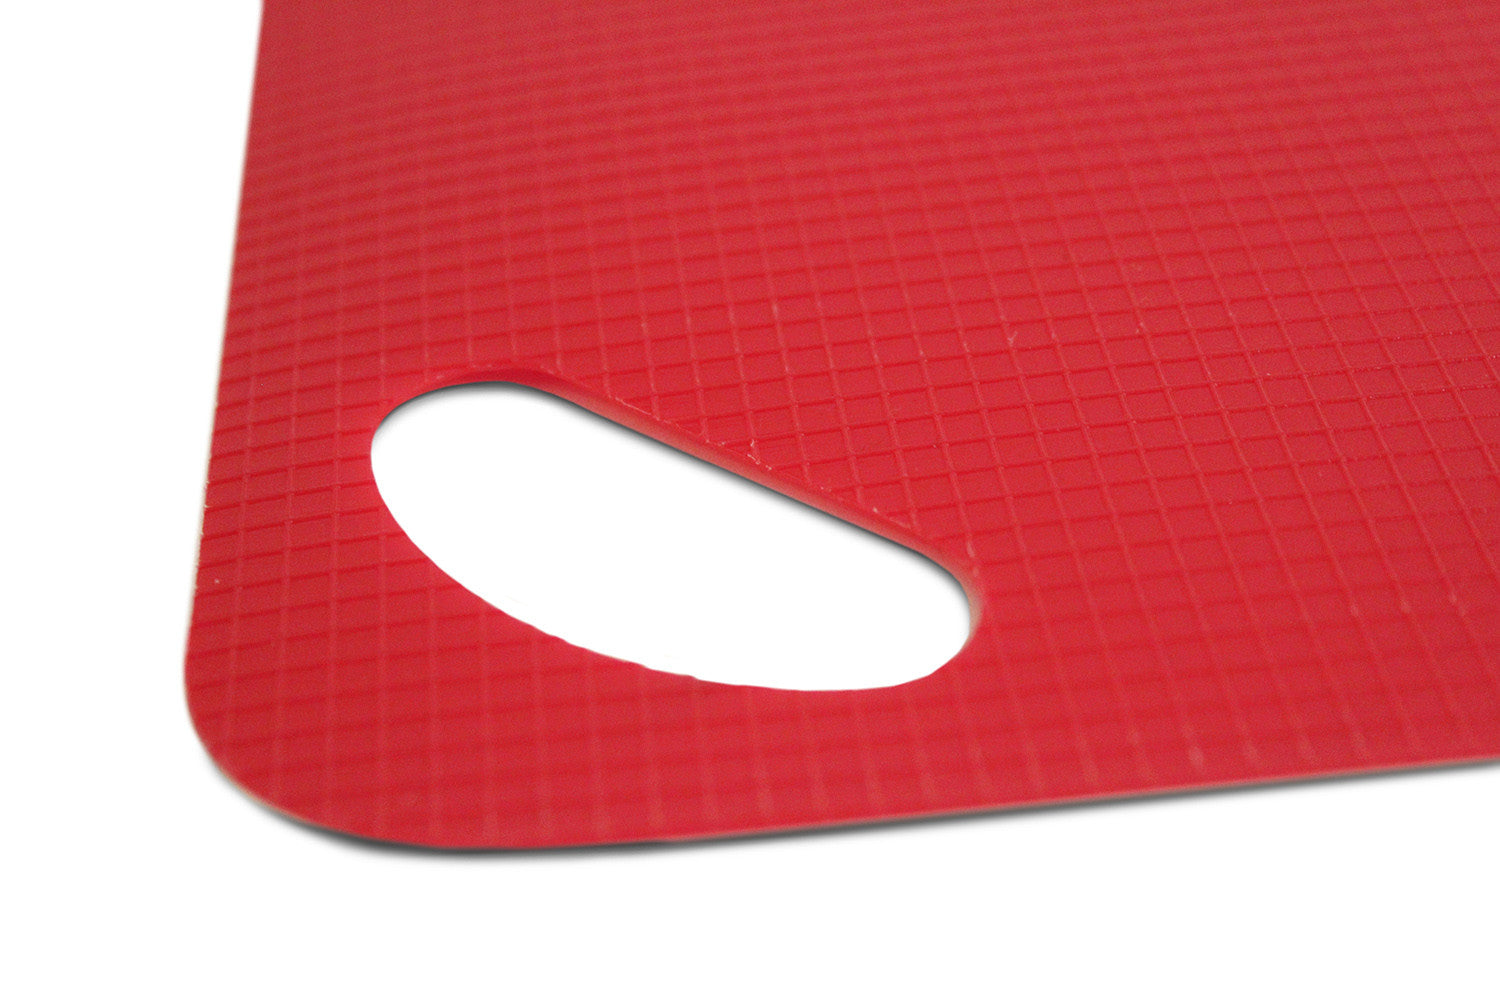 neoflam flexible cutting mats with nonslip grip set of , multicolo, Kitchen design